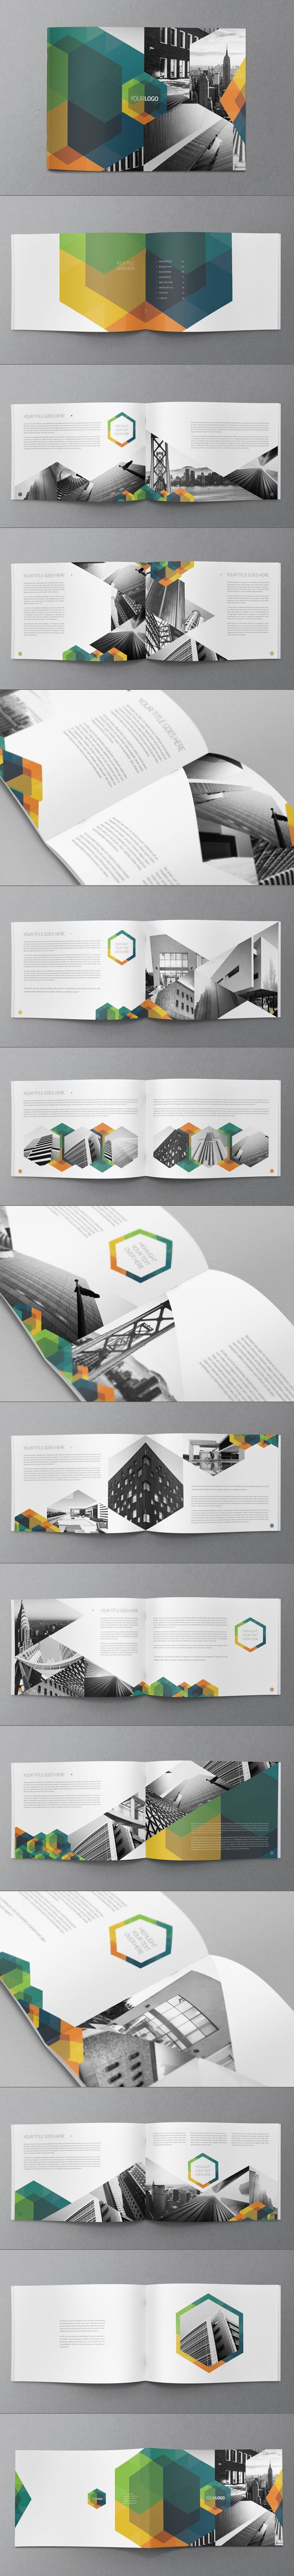 Hexo Brochure Design on Behance